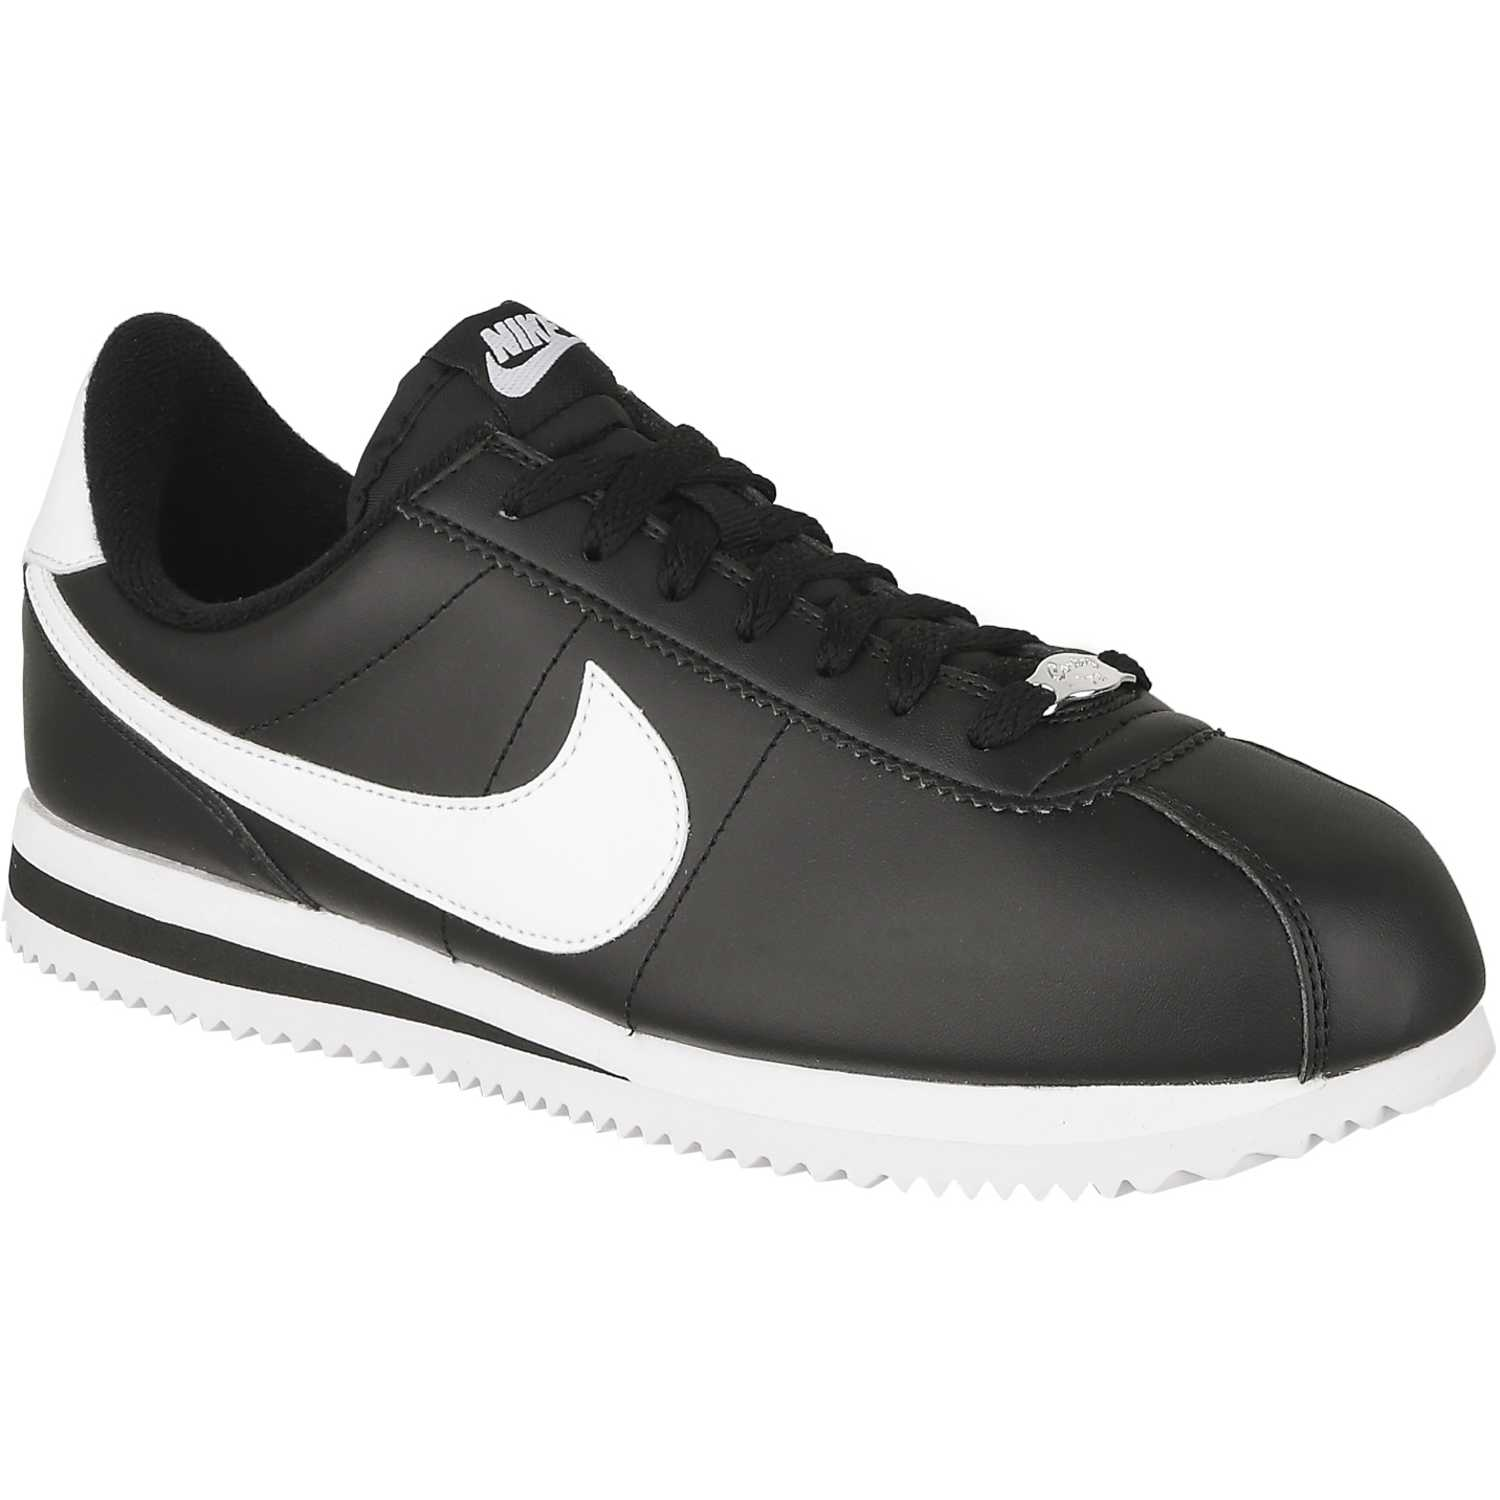 Nike cortez basic leather Negro / blanco Walking